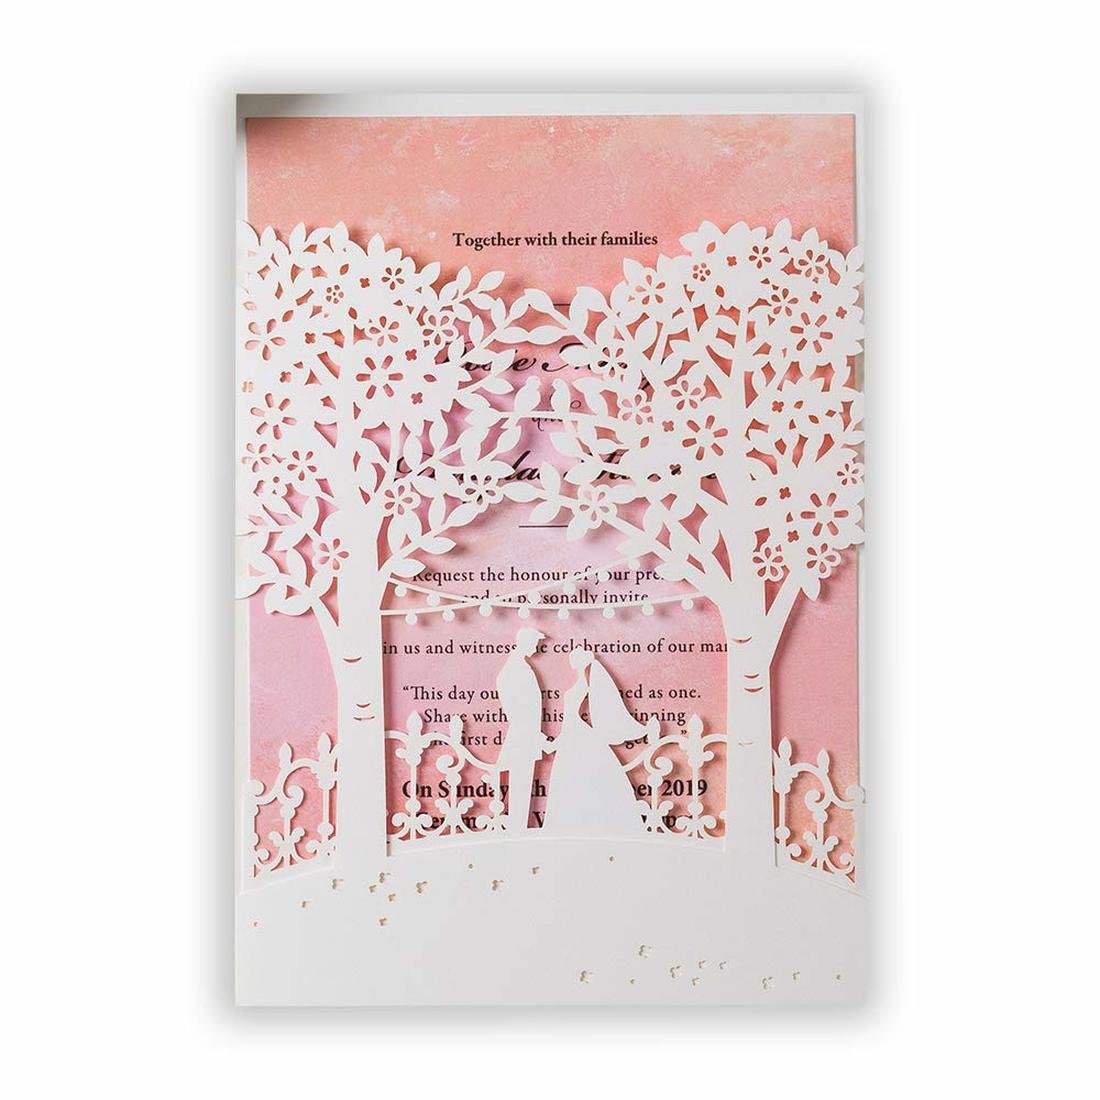 photograph about Printable Invitations Kit called Printable Marriage Invites Package with Envelope, White Laser Slash Bride and Groom Tree Crimson Include Invitations [ Take pleasure in Your self Initially ]